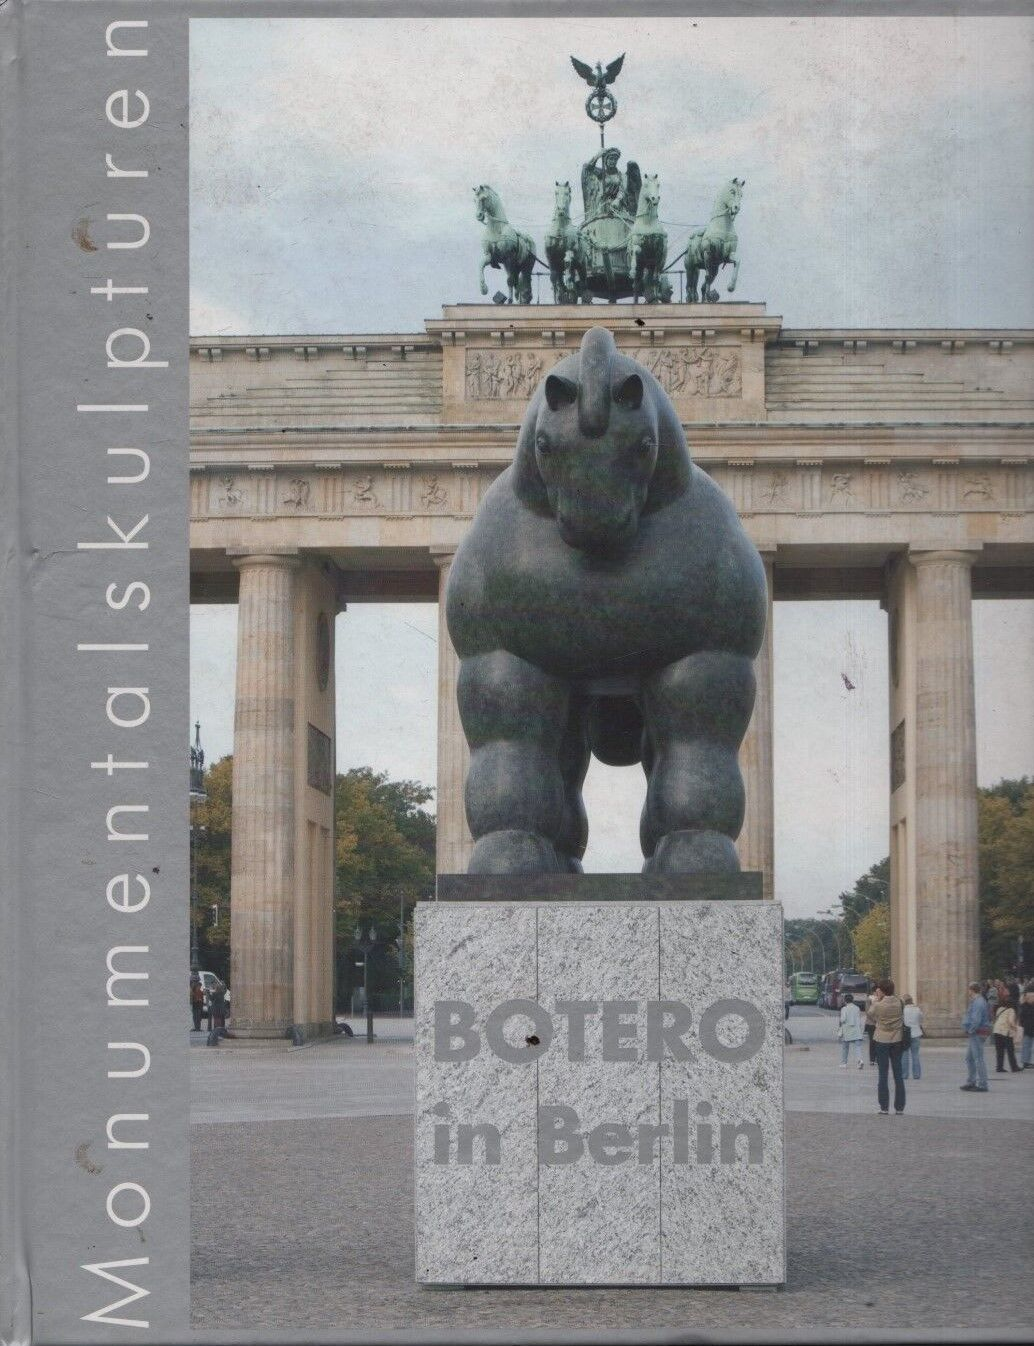 Botero in Berlin. Monumentalskulpturen.